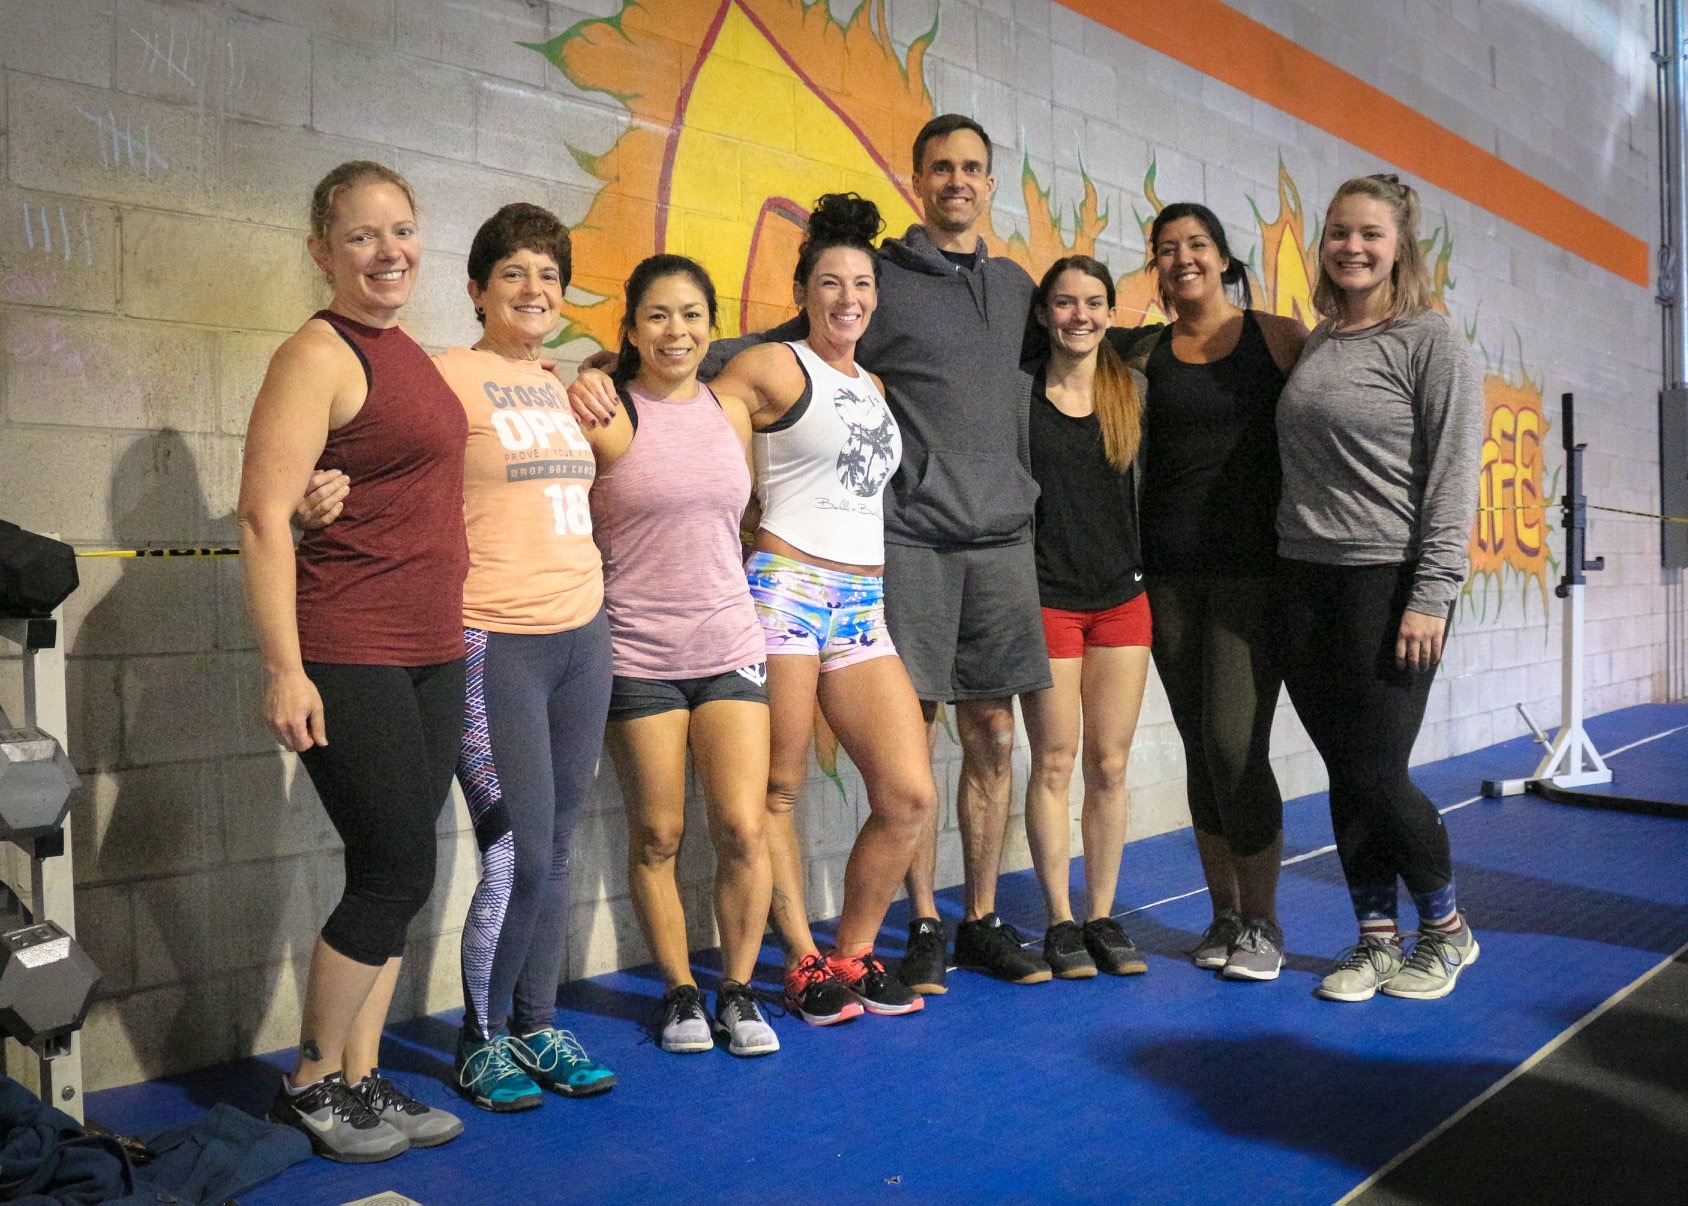 chriss with her fellow drop box competitors at the festivus games hosted by crossfit cafe.